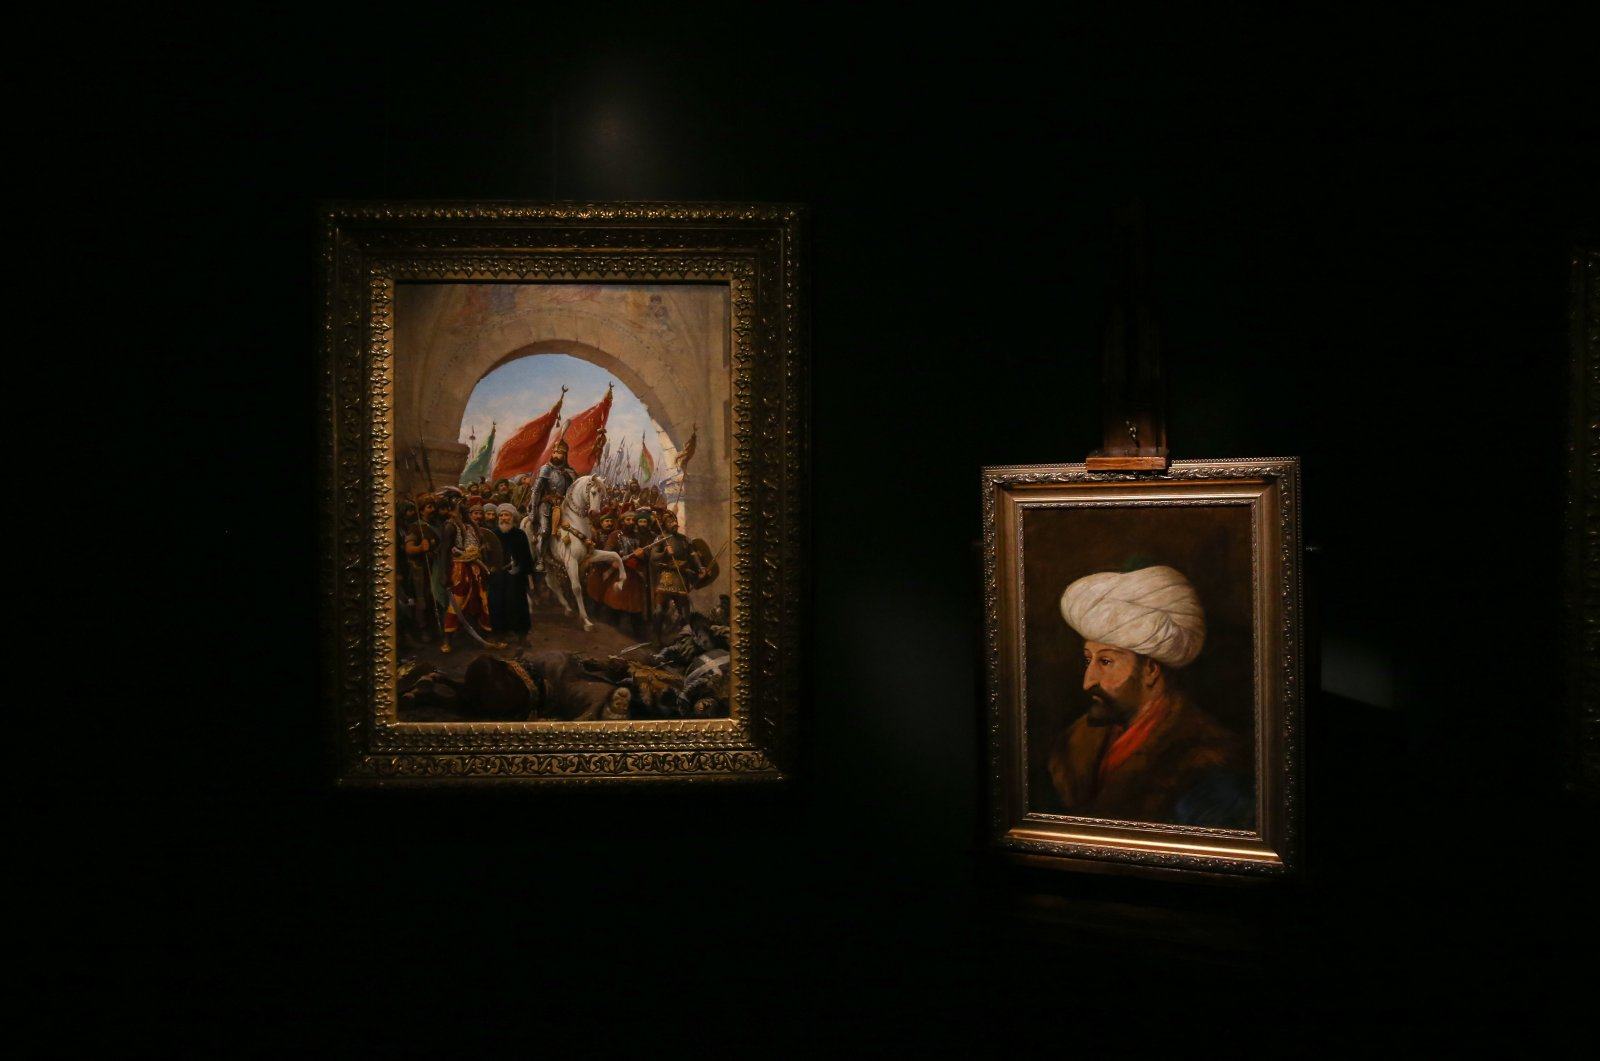 Fausto Zonaro's painting (L) depicting Sultan Mehmed II's entry into Istanbul and Halil Pasha's portrait of the sultan.